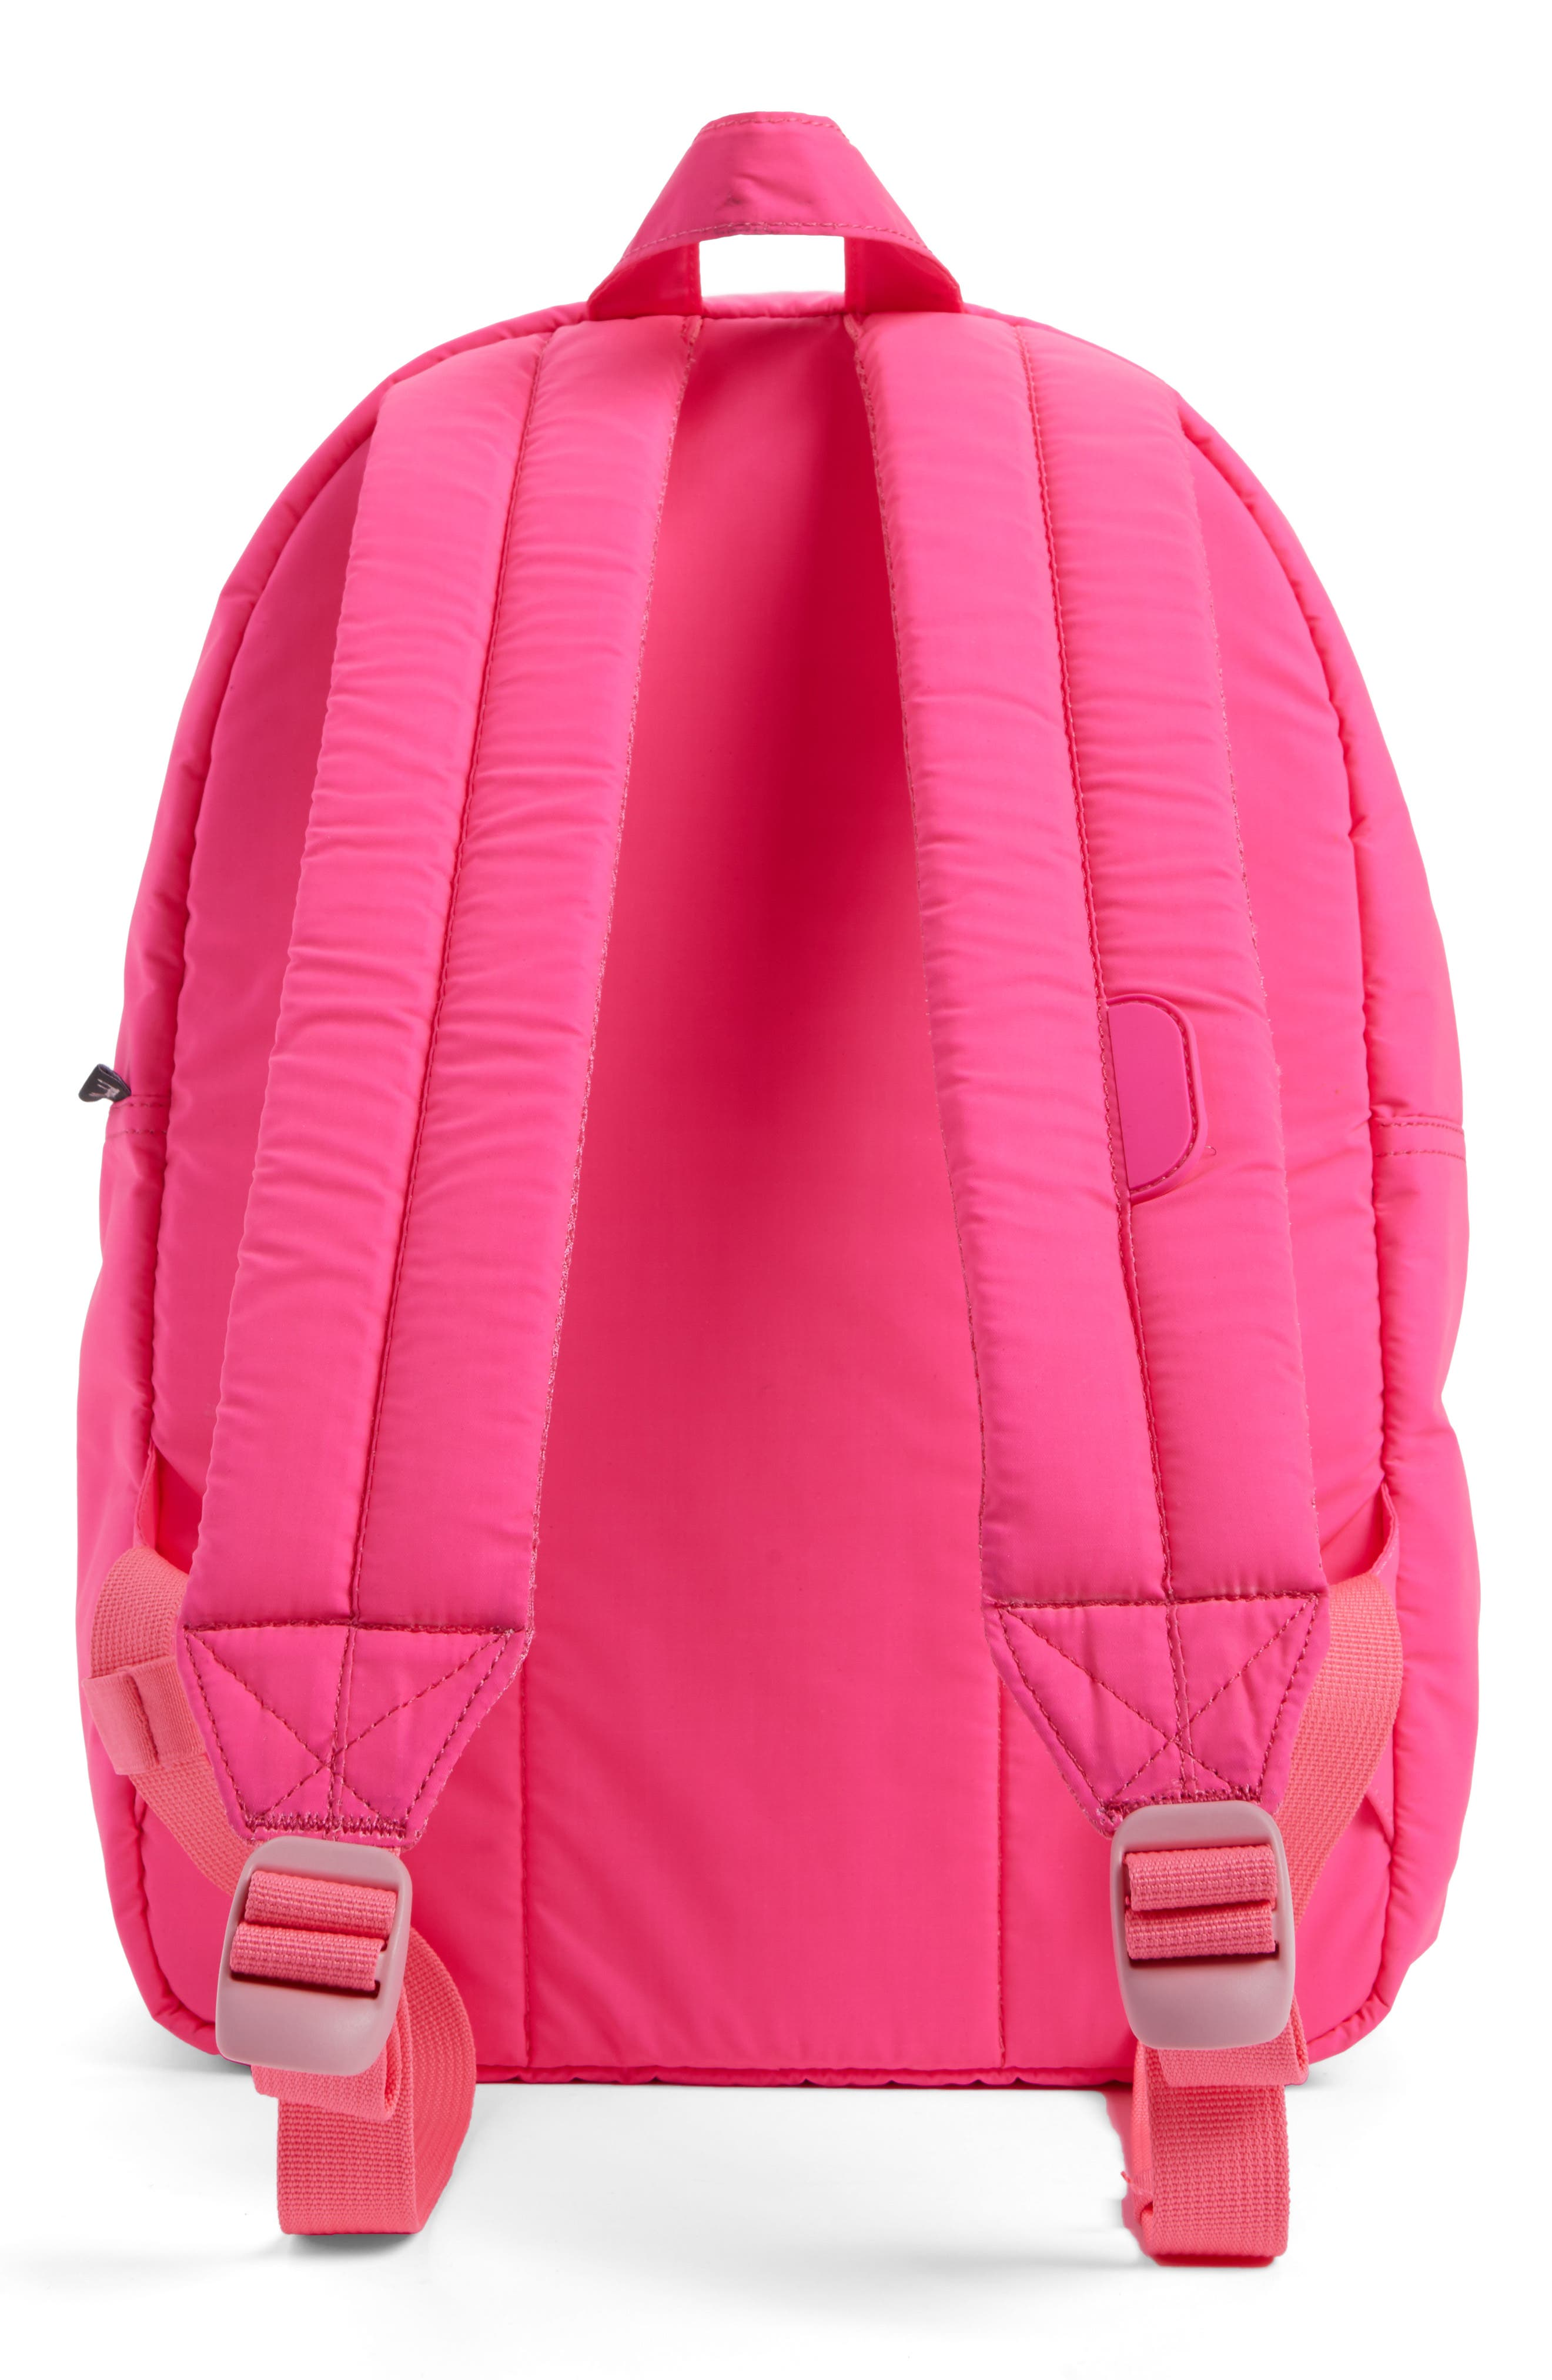 Heritage Backpack,                             Alternate thumbnail 3, color,                             Neon Pink Rubber